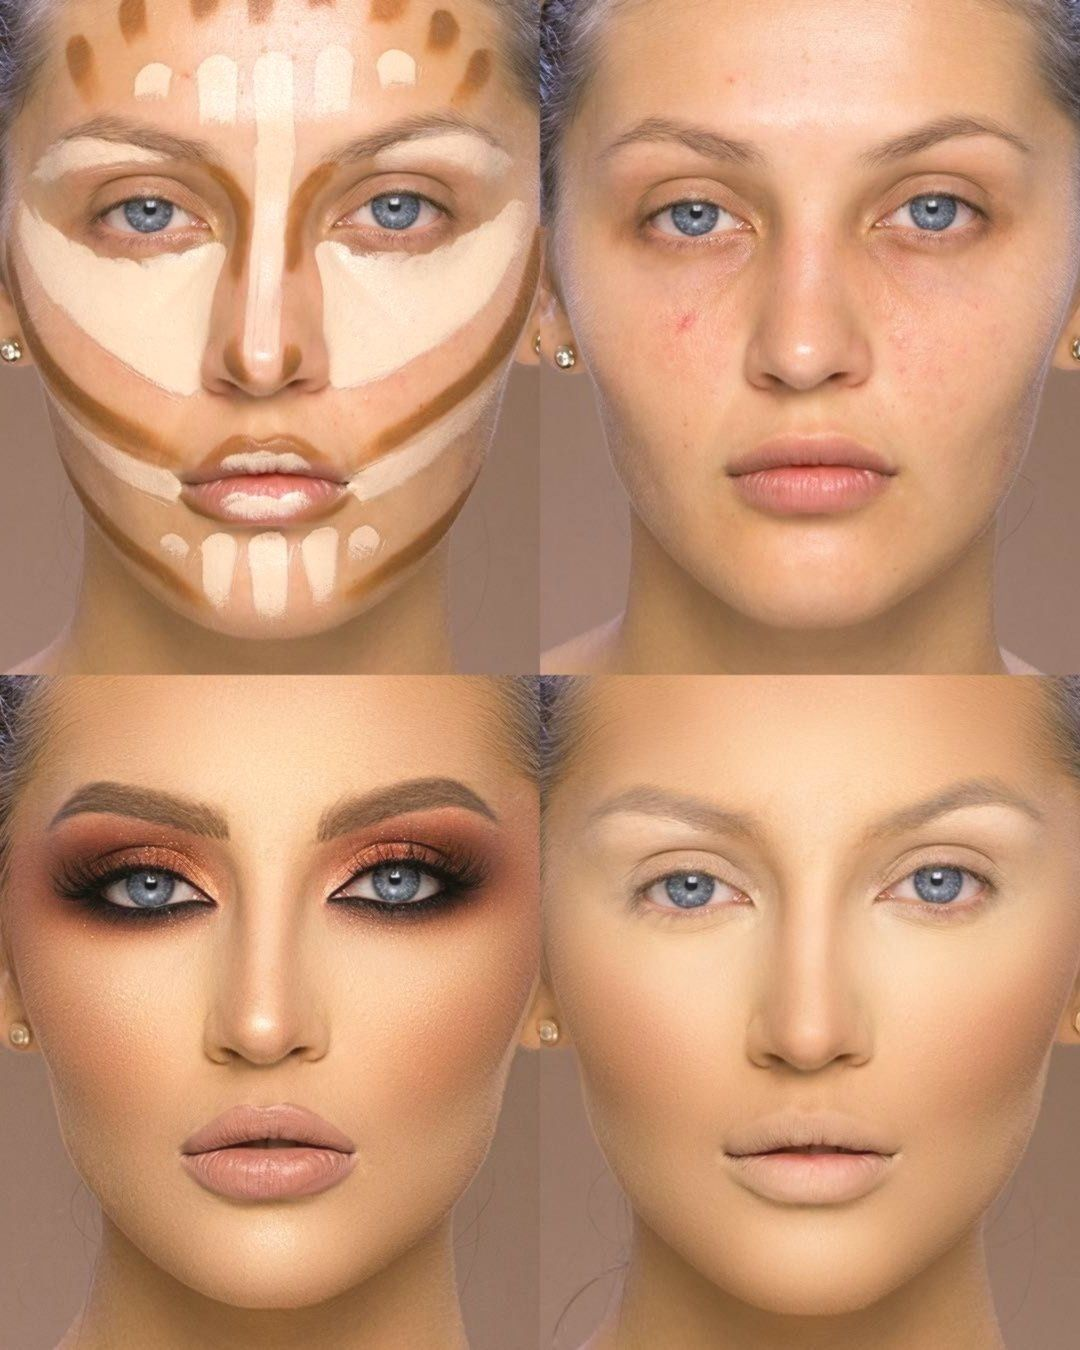 Makeup Tutorial For Beginners Learn How To Apply Makeup Like A Pro With This Collection O Makeup Tutorial For Beginners Makeup For Beginners Highlighter Makeup